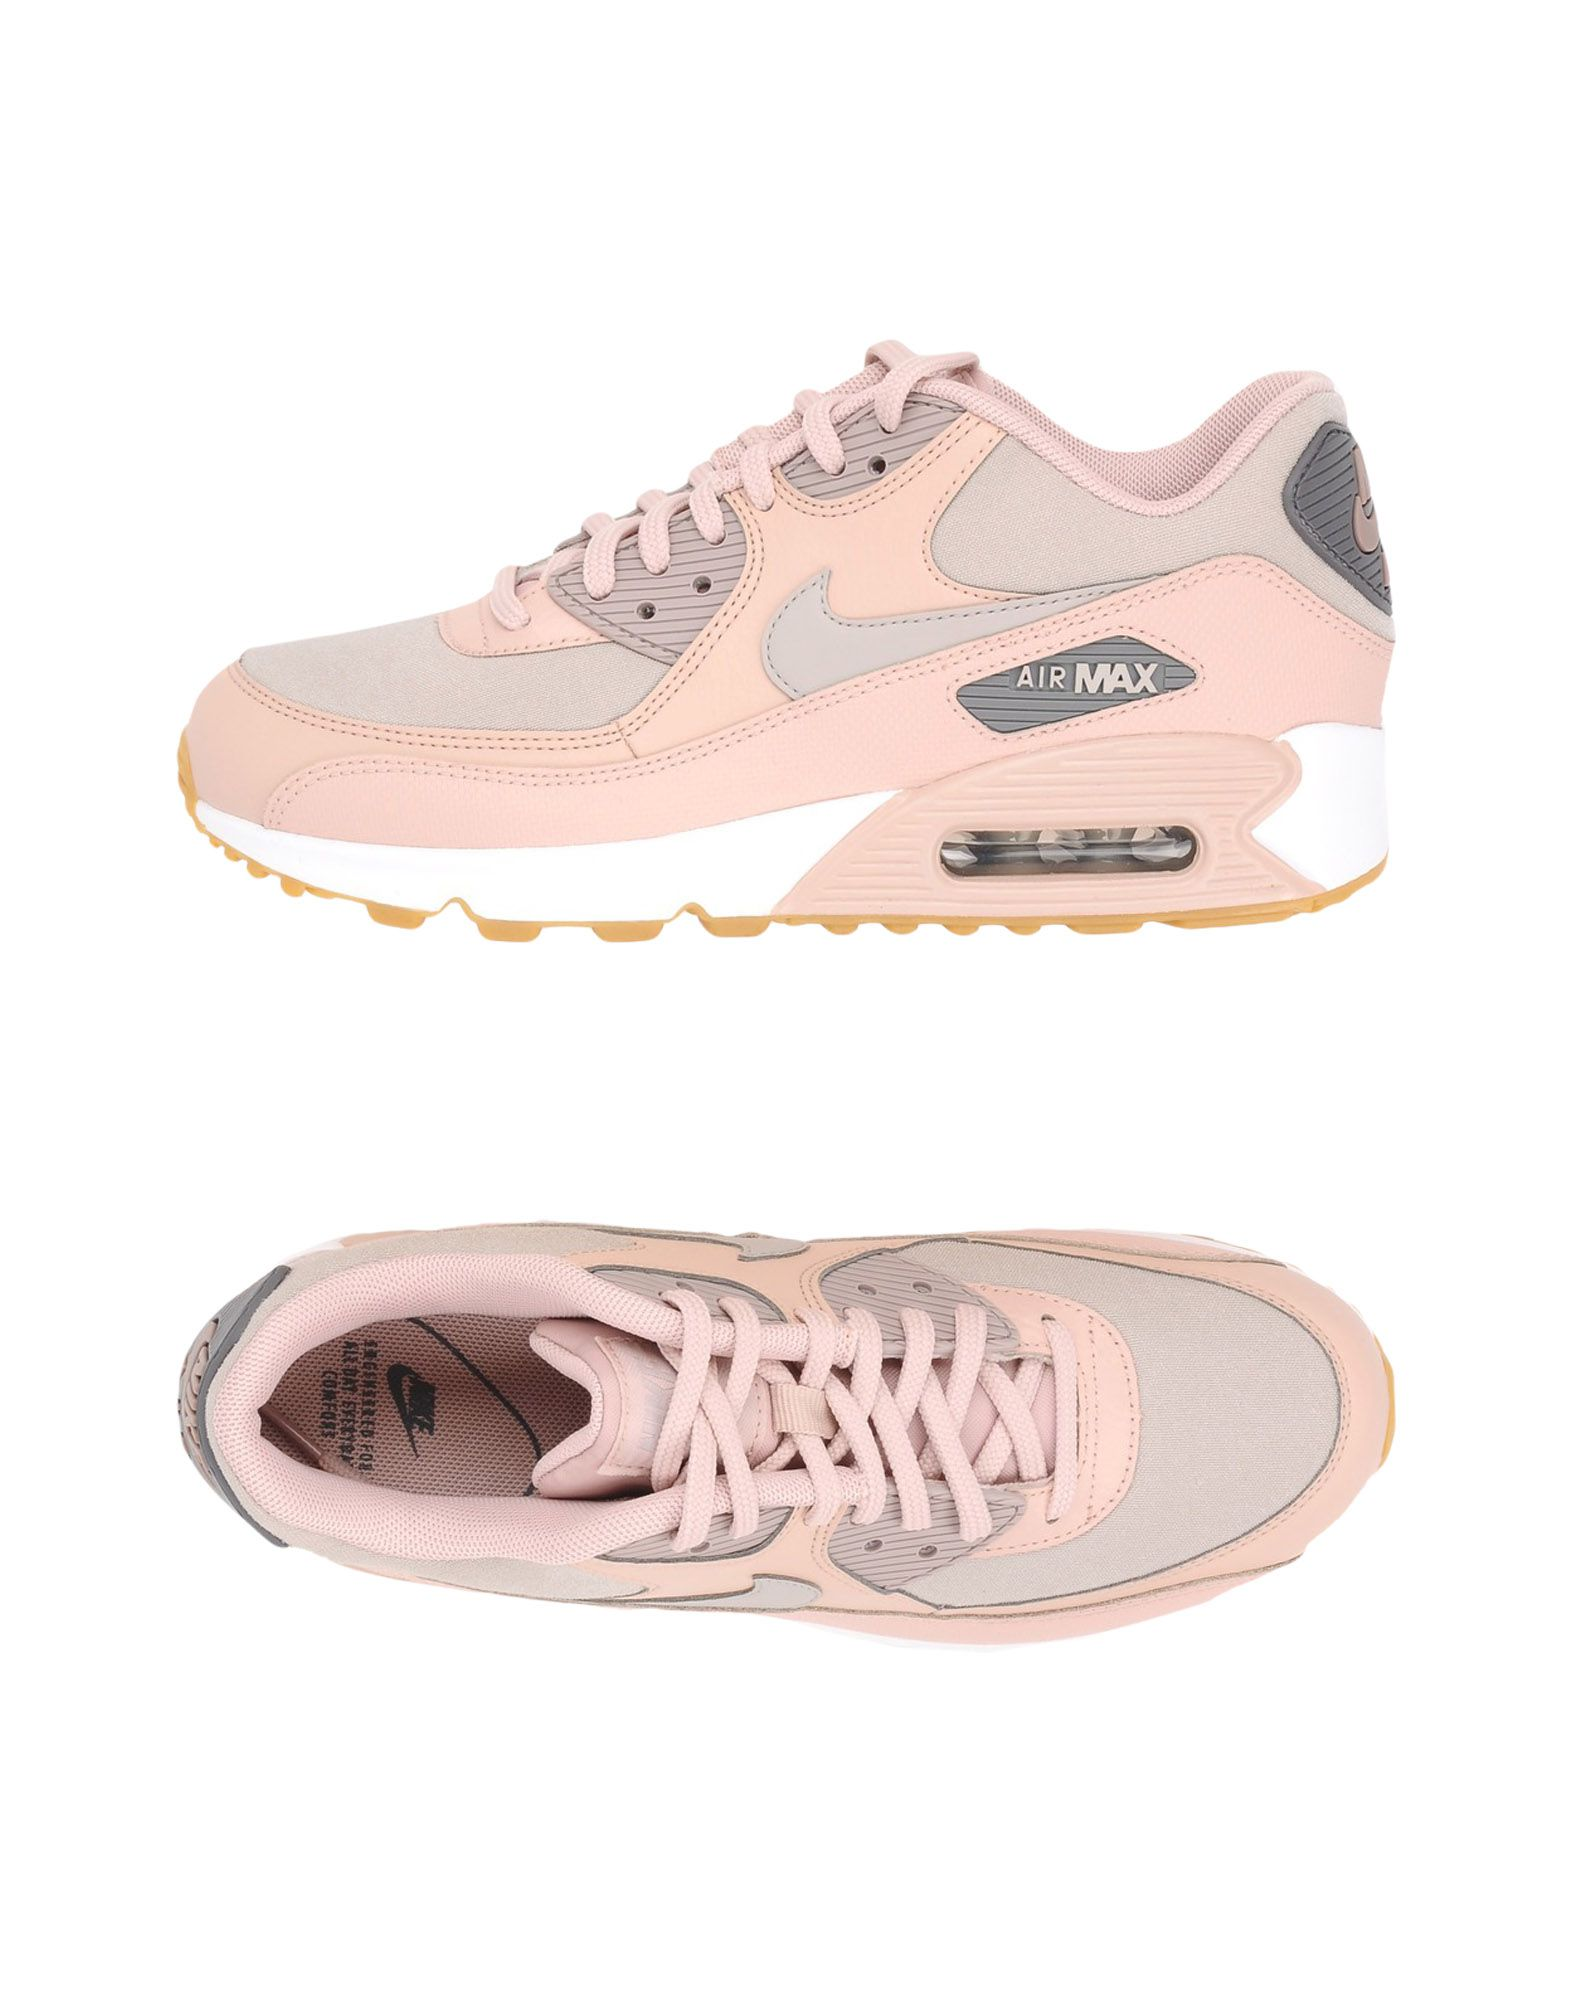 NIKE Низкие кеды и кроссовки nike original new arrival mens running shoes air max modern light quick dry low top for men 844874 402 844887 005